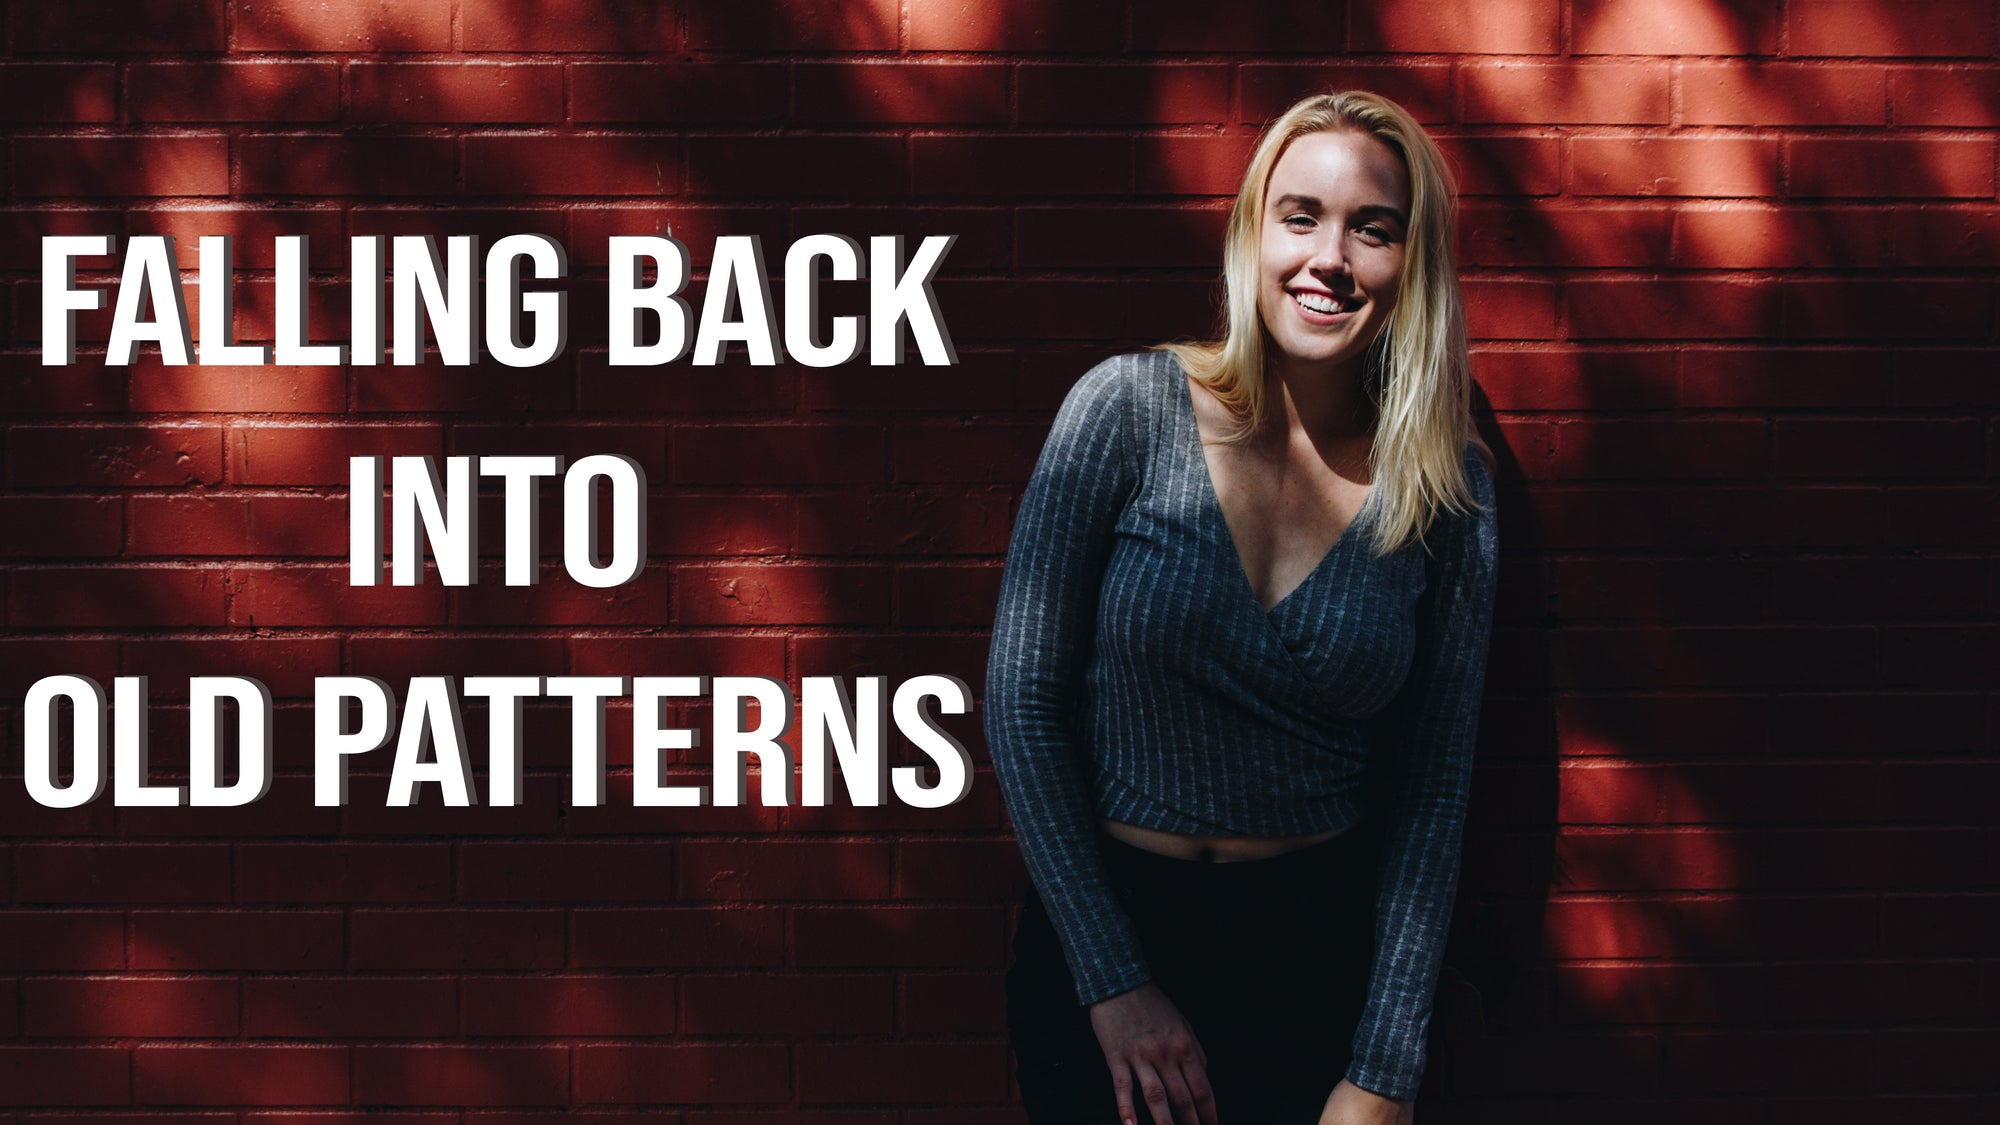 a blonde girl smiling against a red brick wall with text falling back into old patterns written